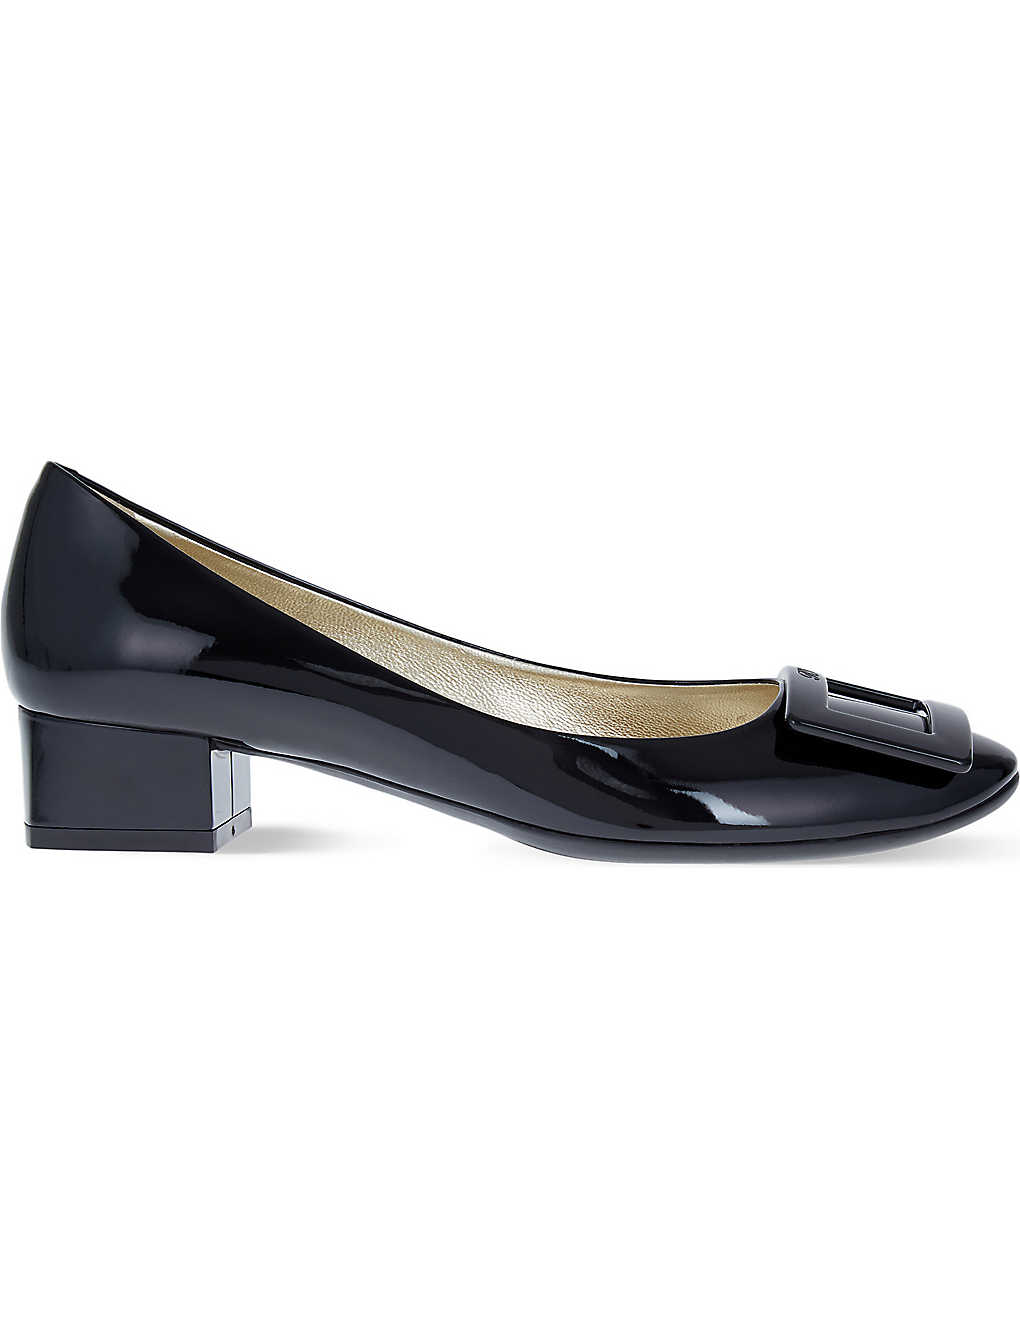 a8e90444bc ROGER VIVIER - Belle de Nuit patent-leather courts | Selfridges.com